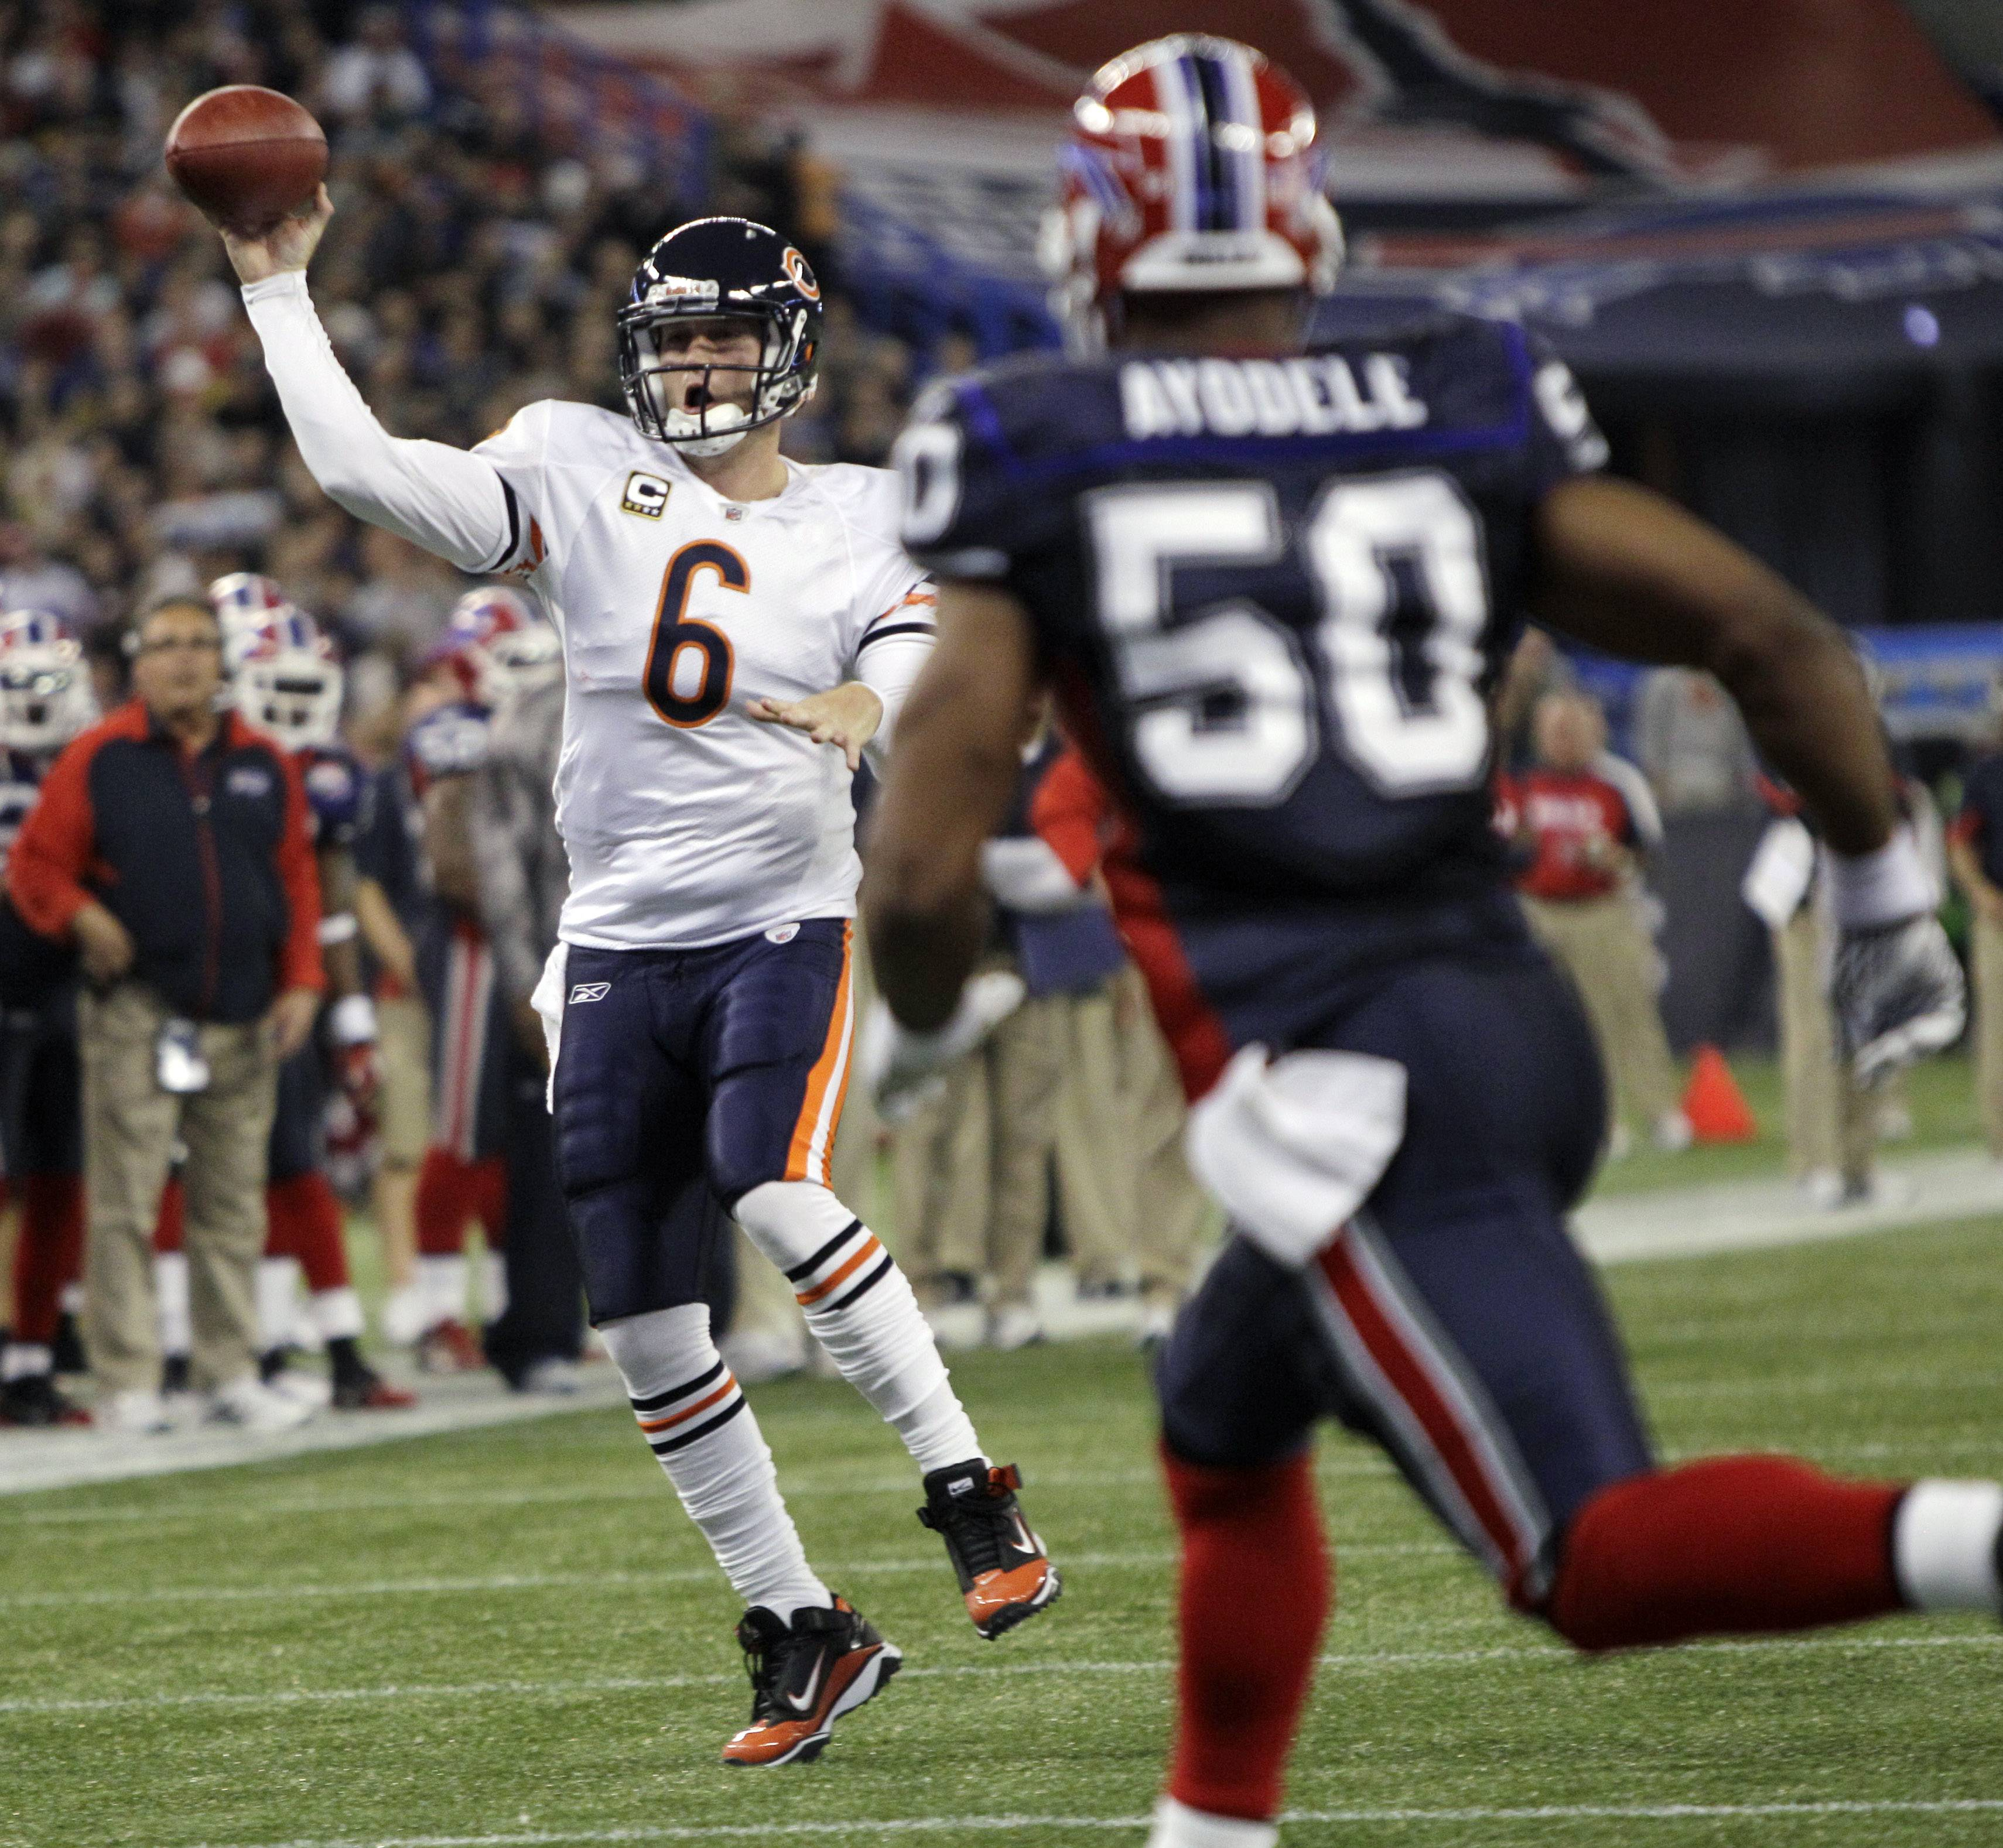 Jay Cutler threw two touchdown passes, including one to Earl Bennett late in the fourth quarter to keep the Buffalo Bills winless through eight games and give the Chicago Bears a 22-19 victory Sunday.